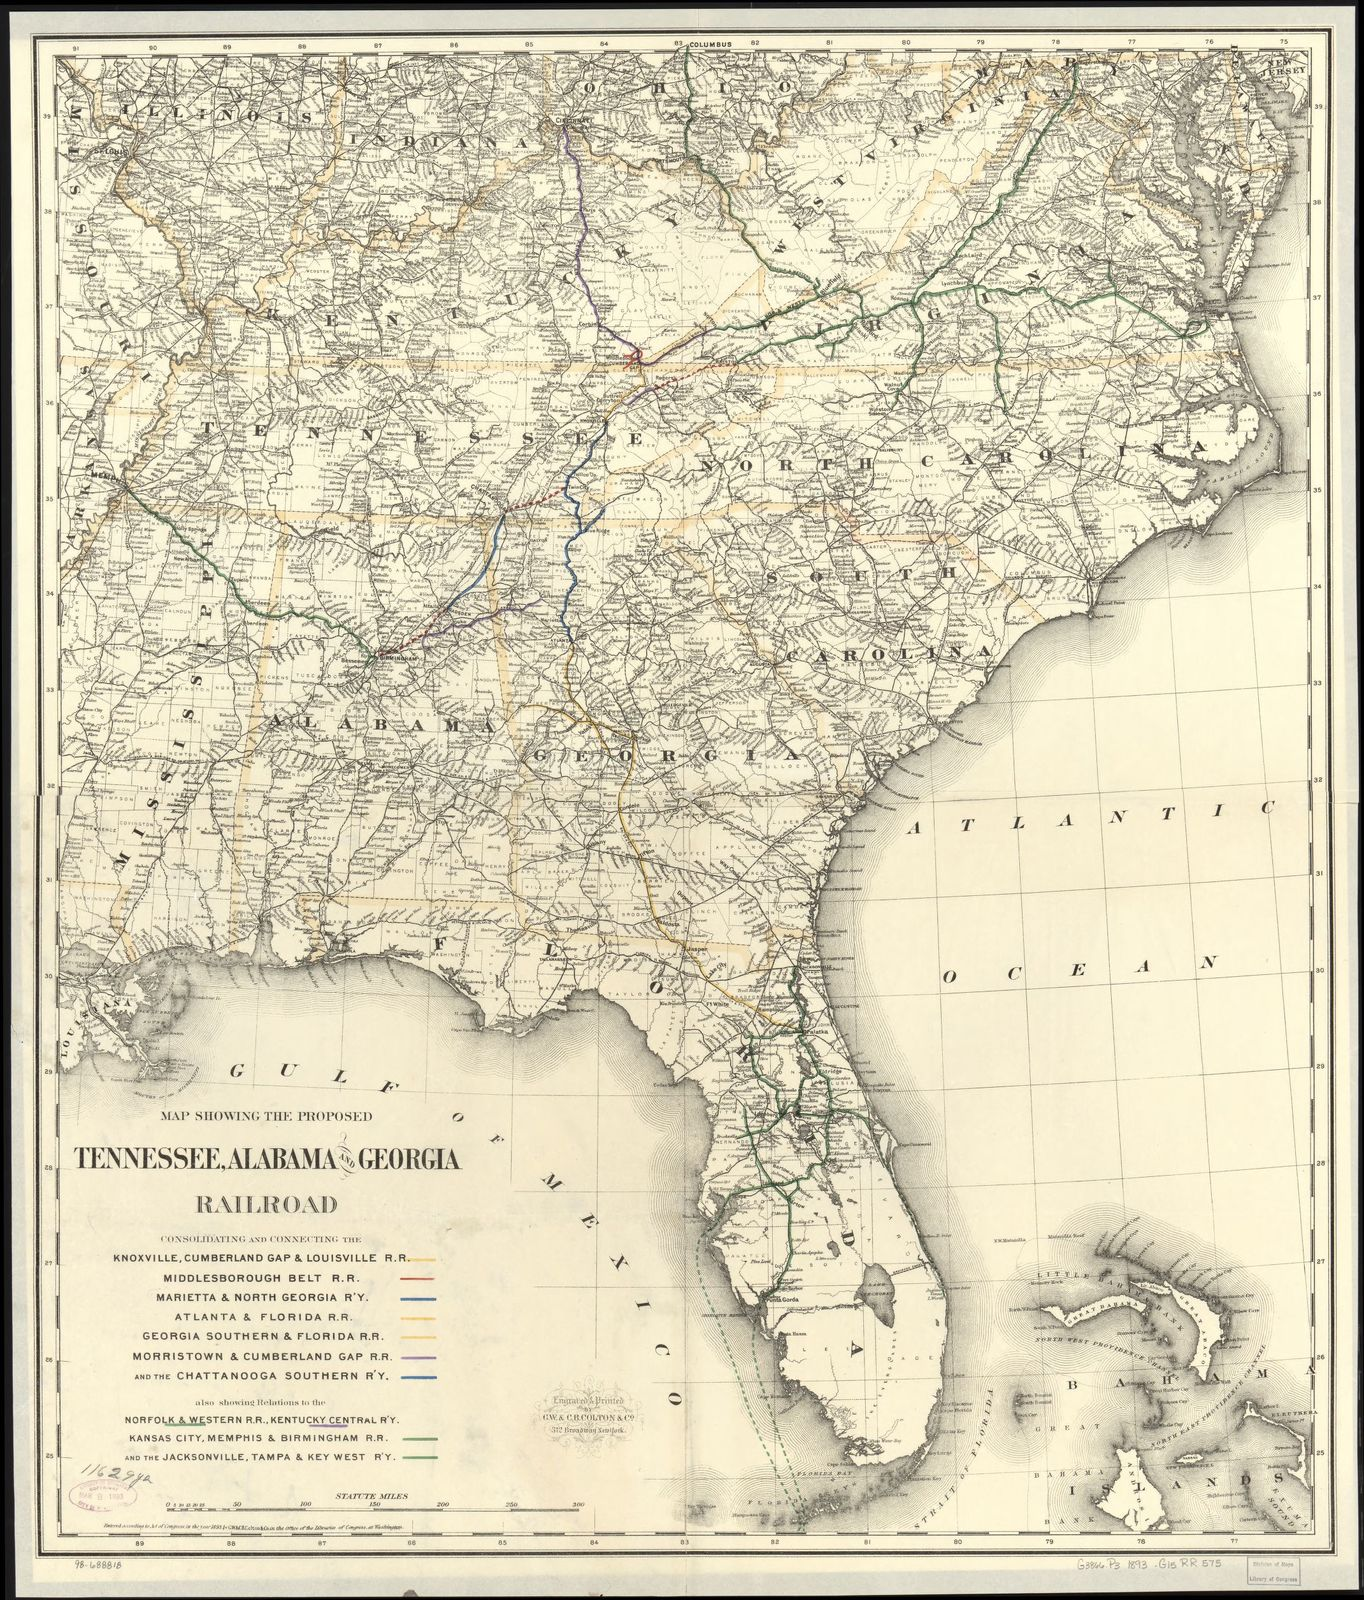 Map Of Georgia Florida And Alabama.Map Showing The Proposed Tennessee Alabama And Georgia Railroad